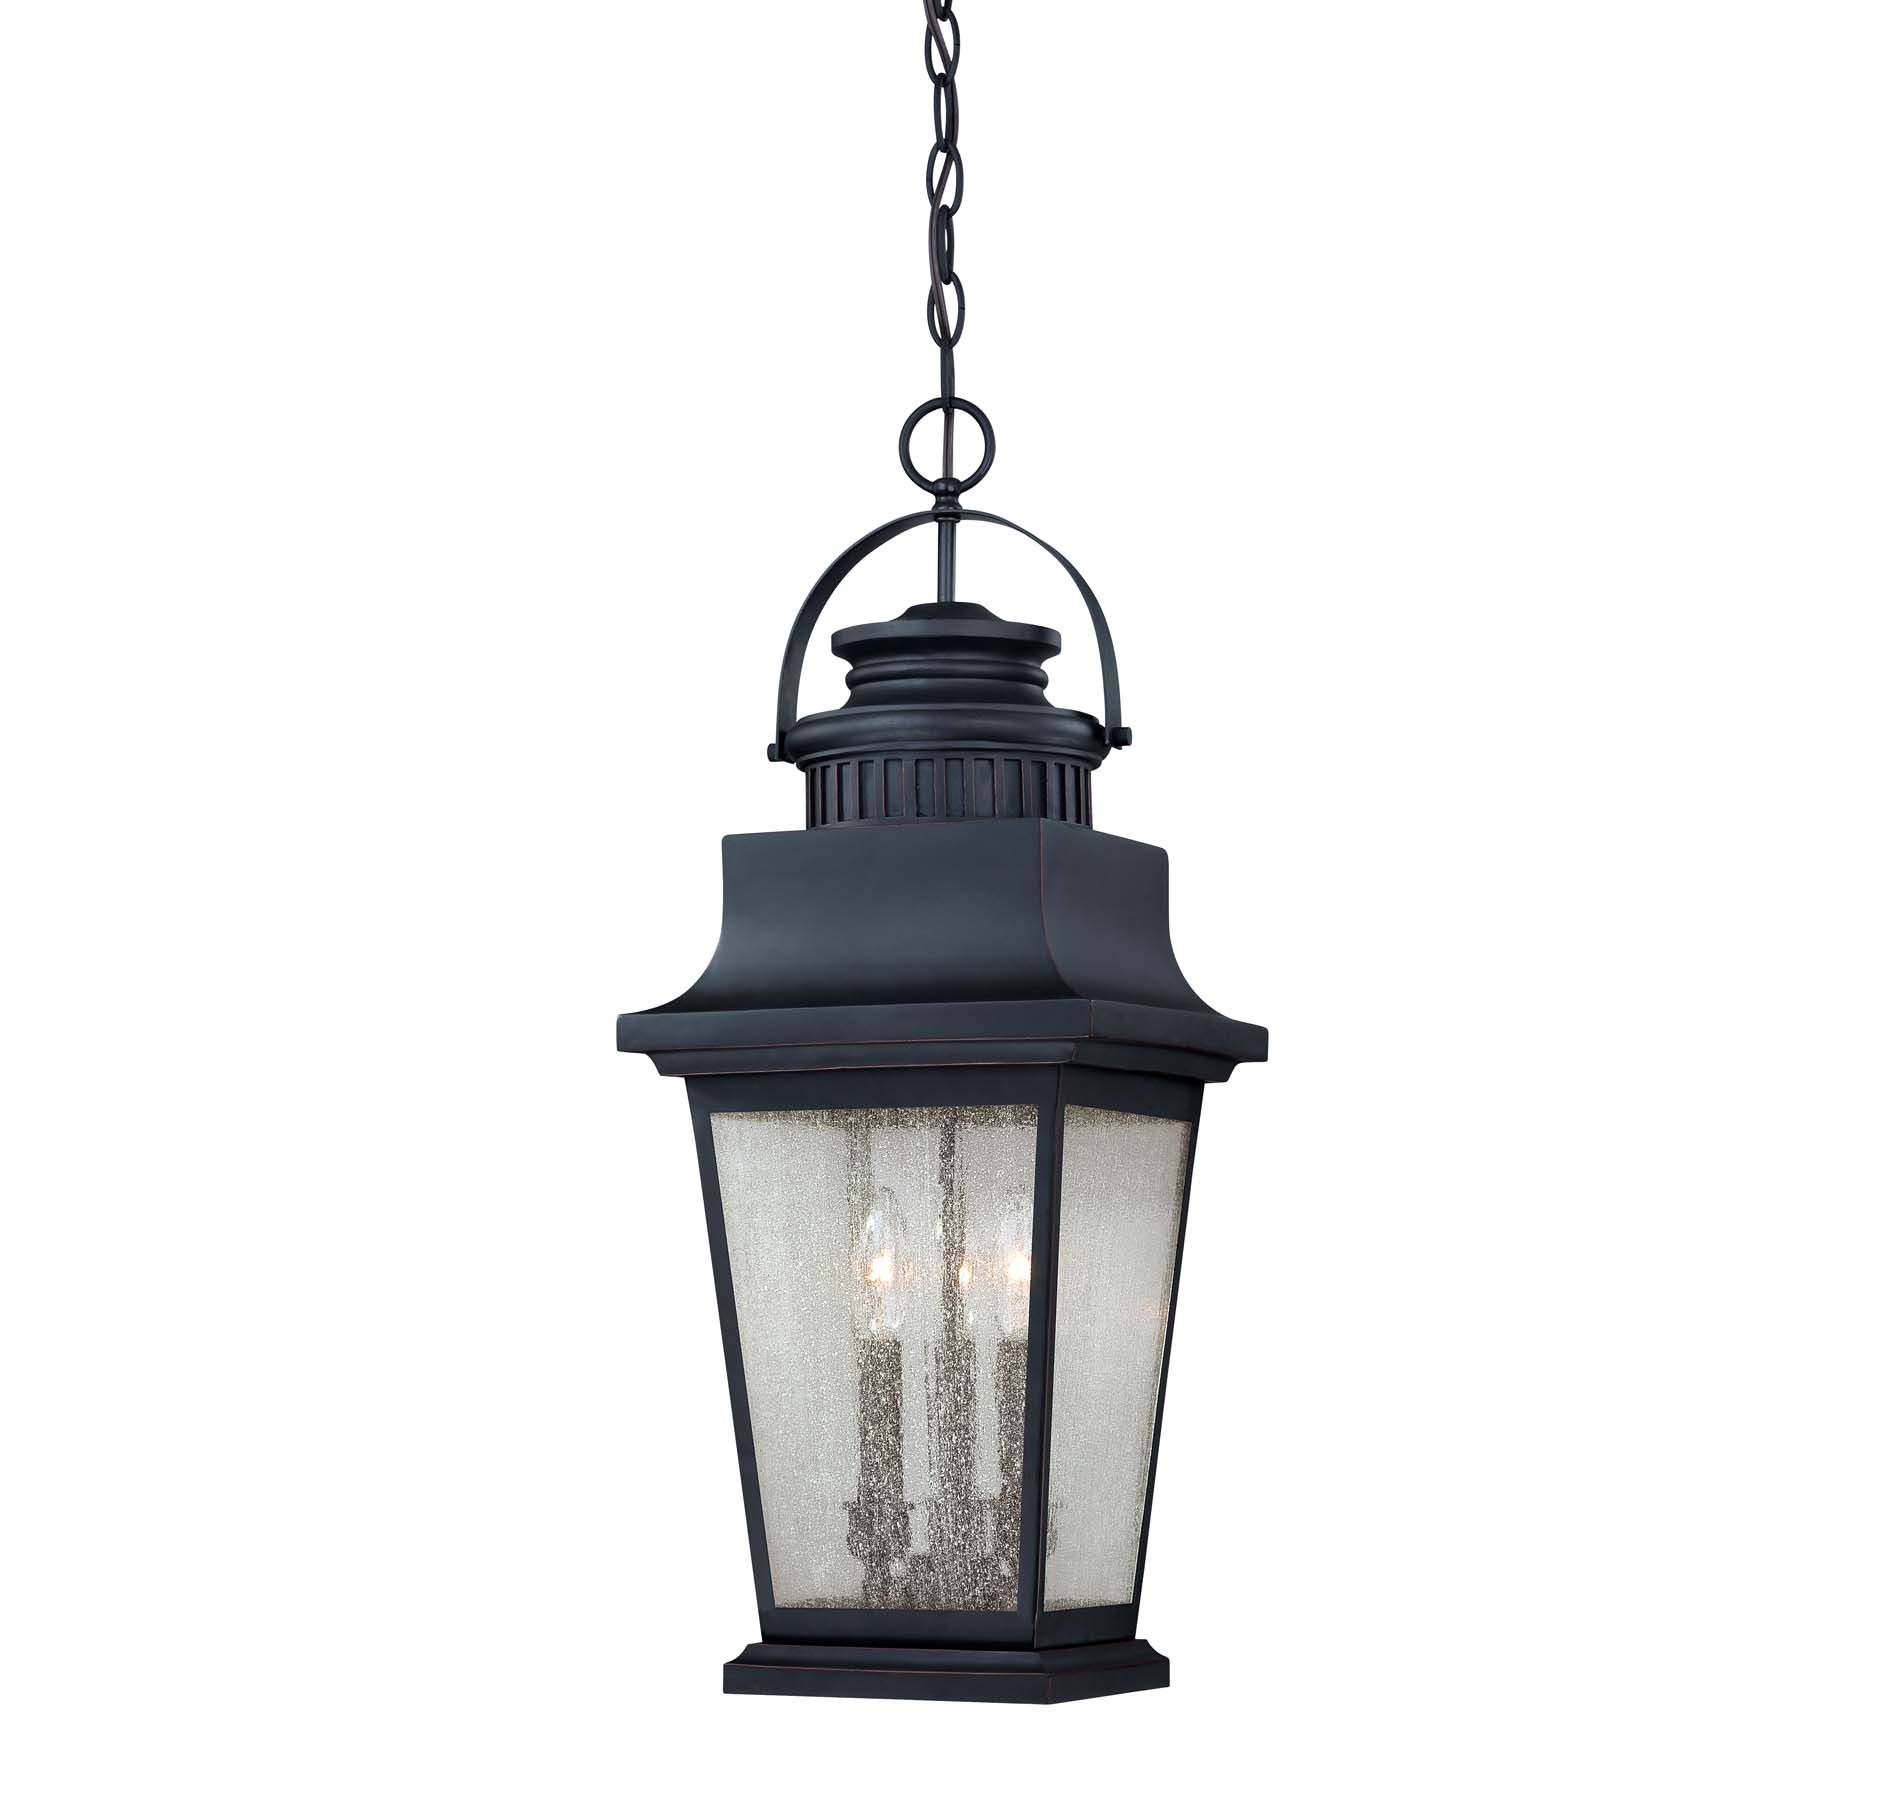 27 H X 10 23lbs Barrister Hanging Lantern Outdoor Hanging Lights Outdoor Hanging Lanterns Hanging Lanterns